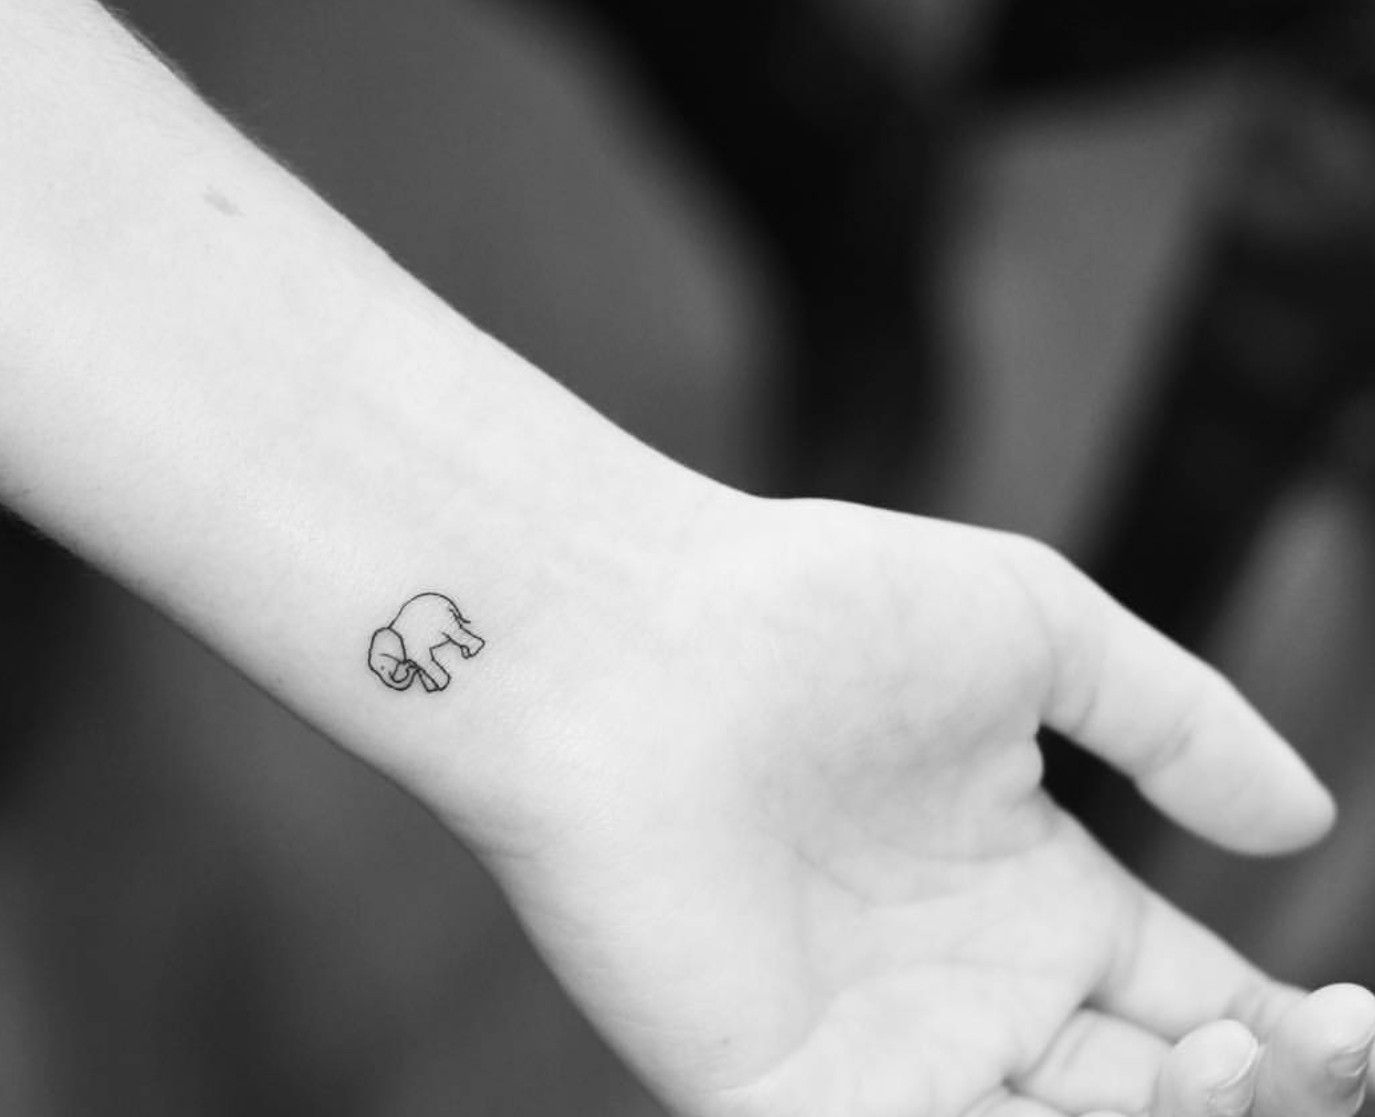 Dainty Elephant Tattoo Tattoos Tattoos Elephant Tattoos Small